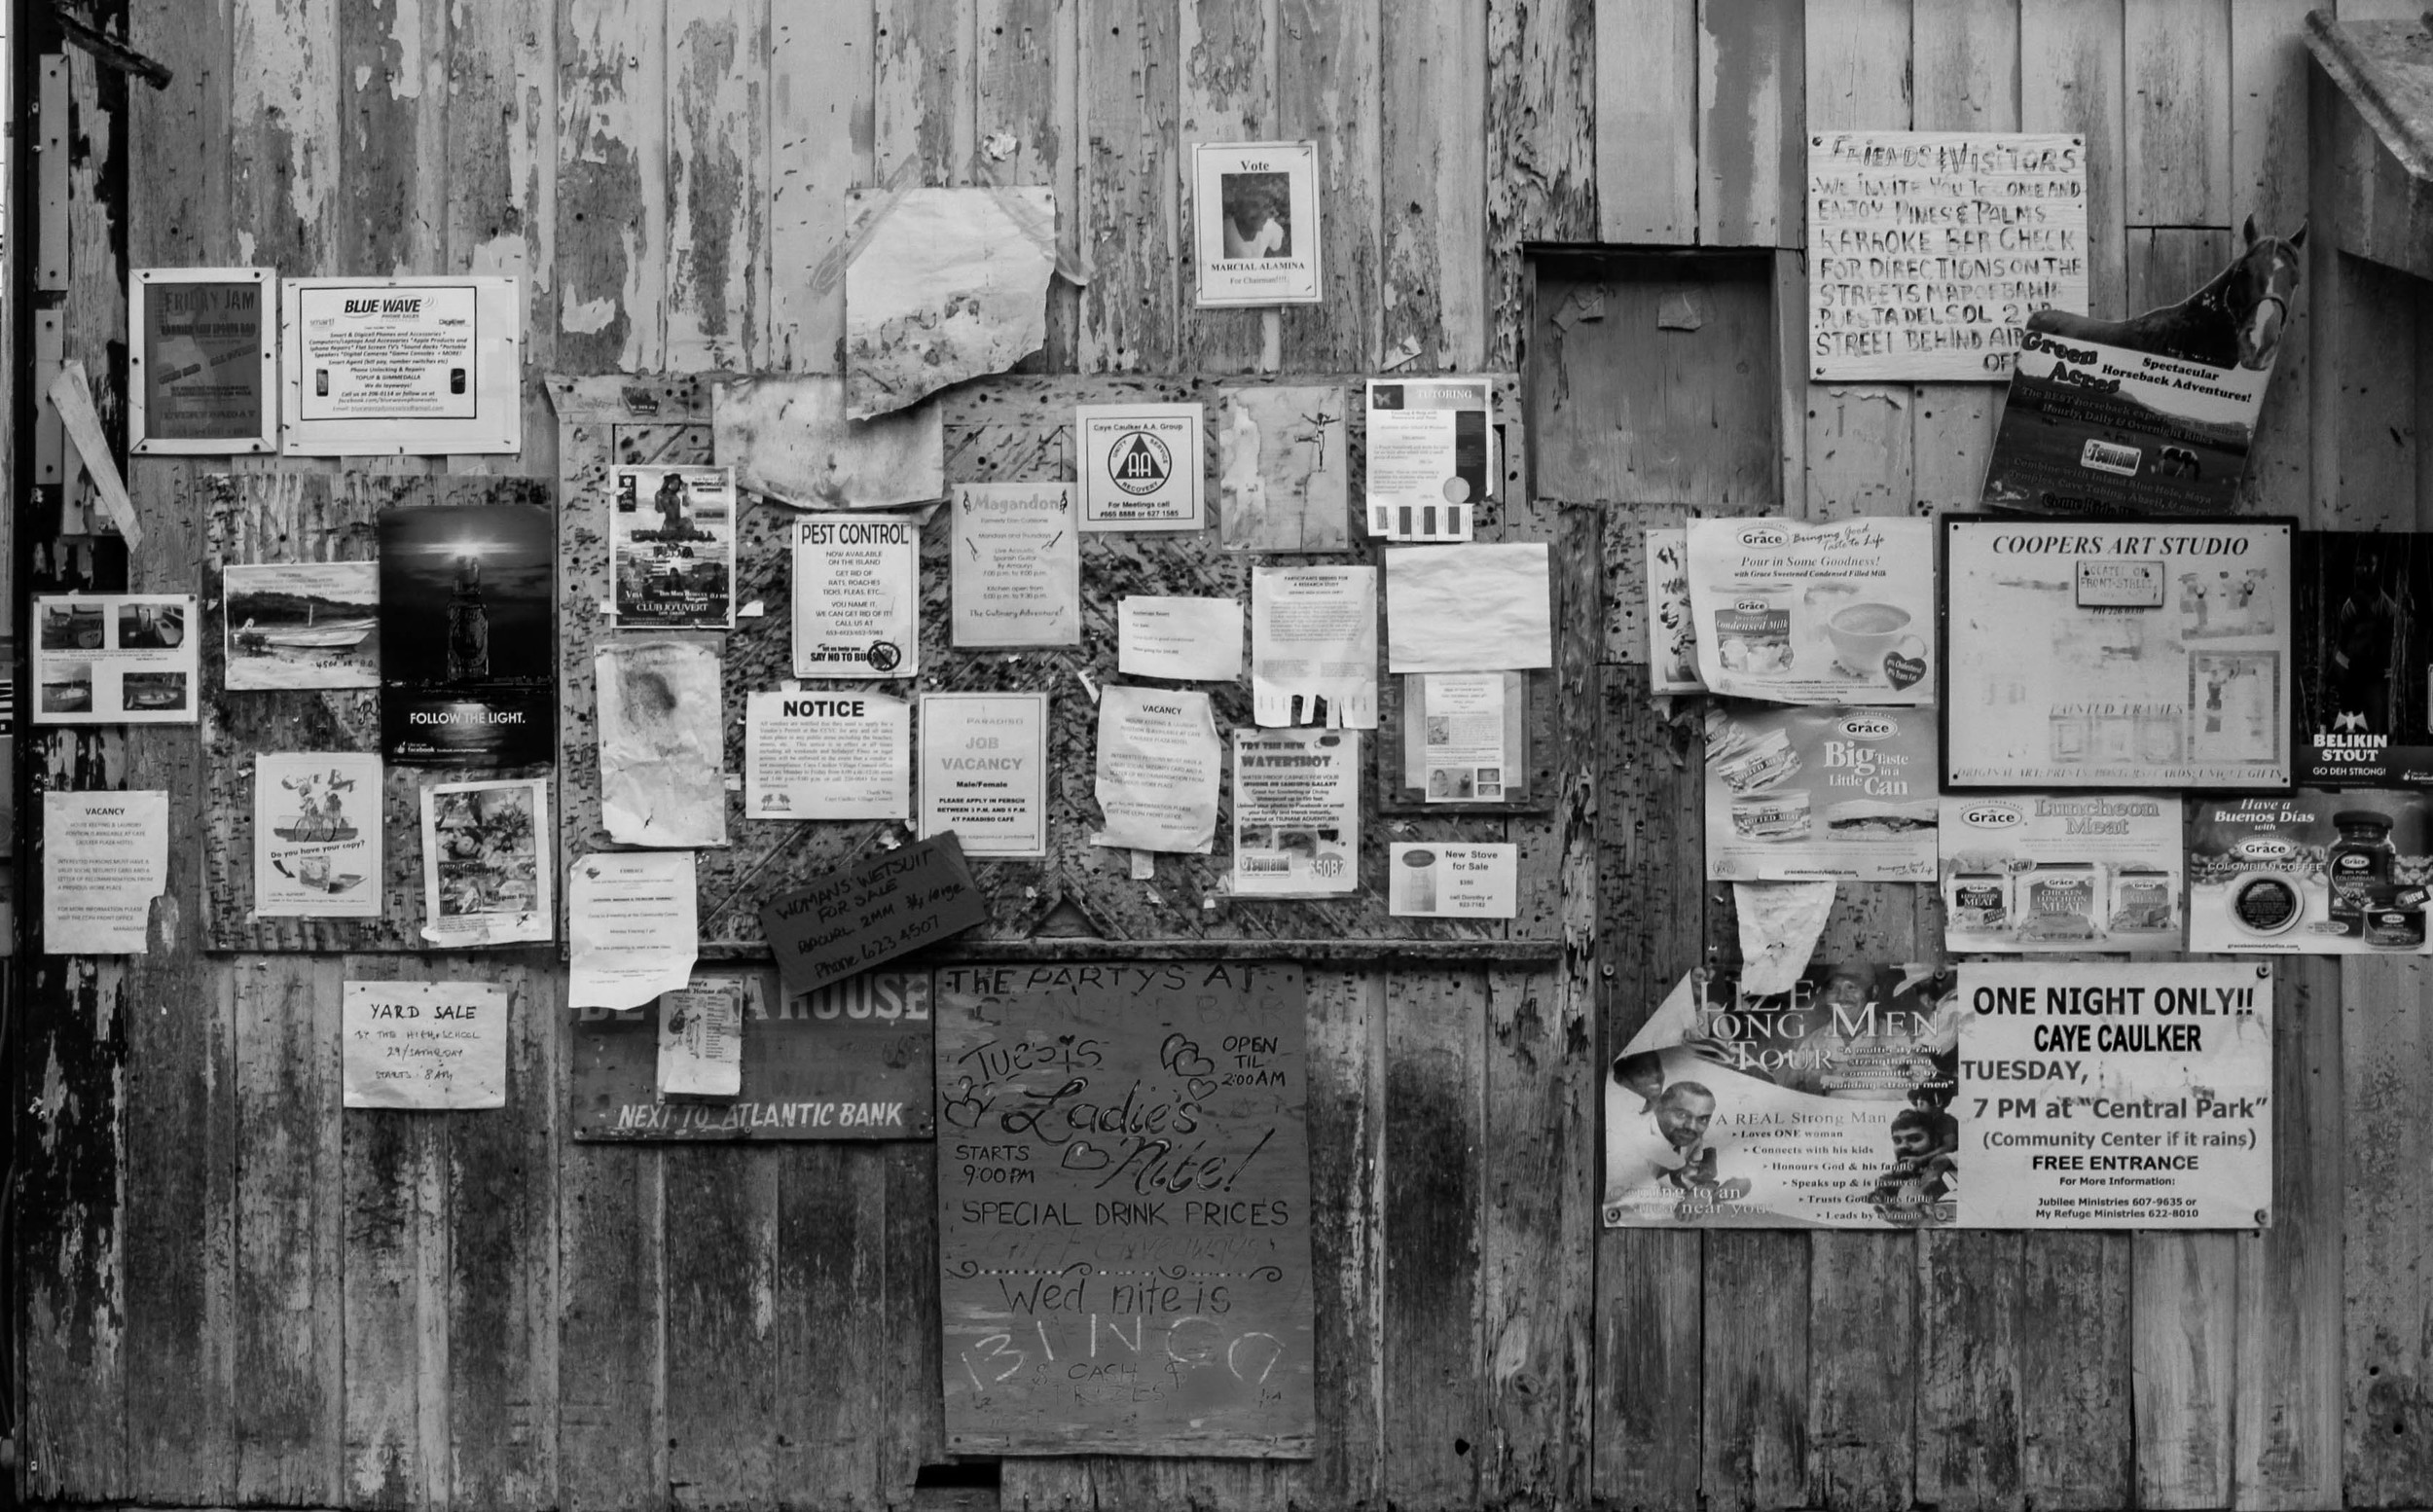 caye caulker poster black and white